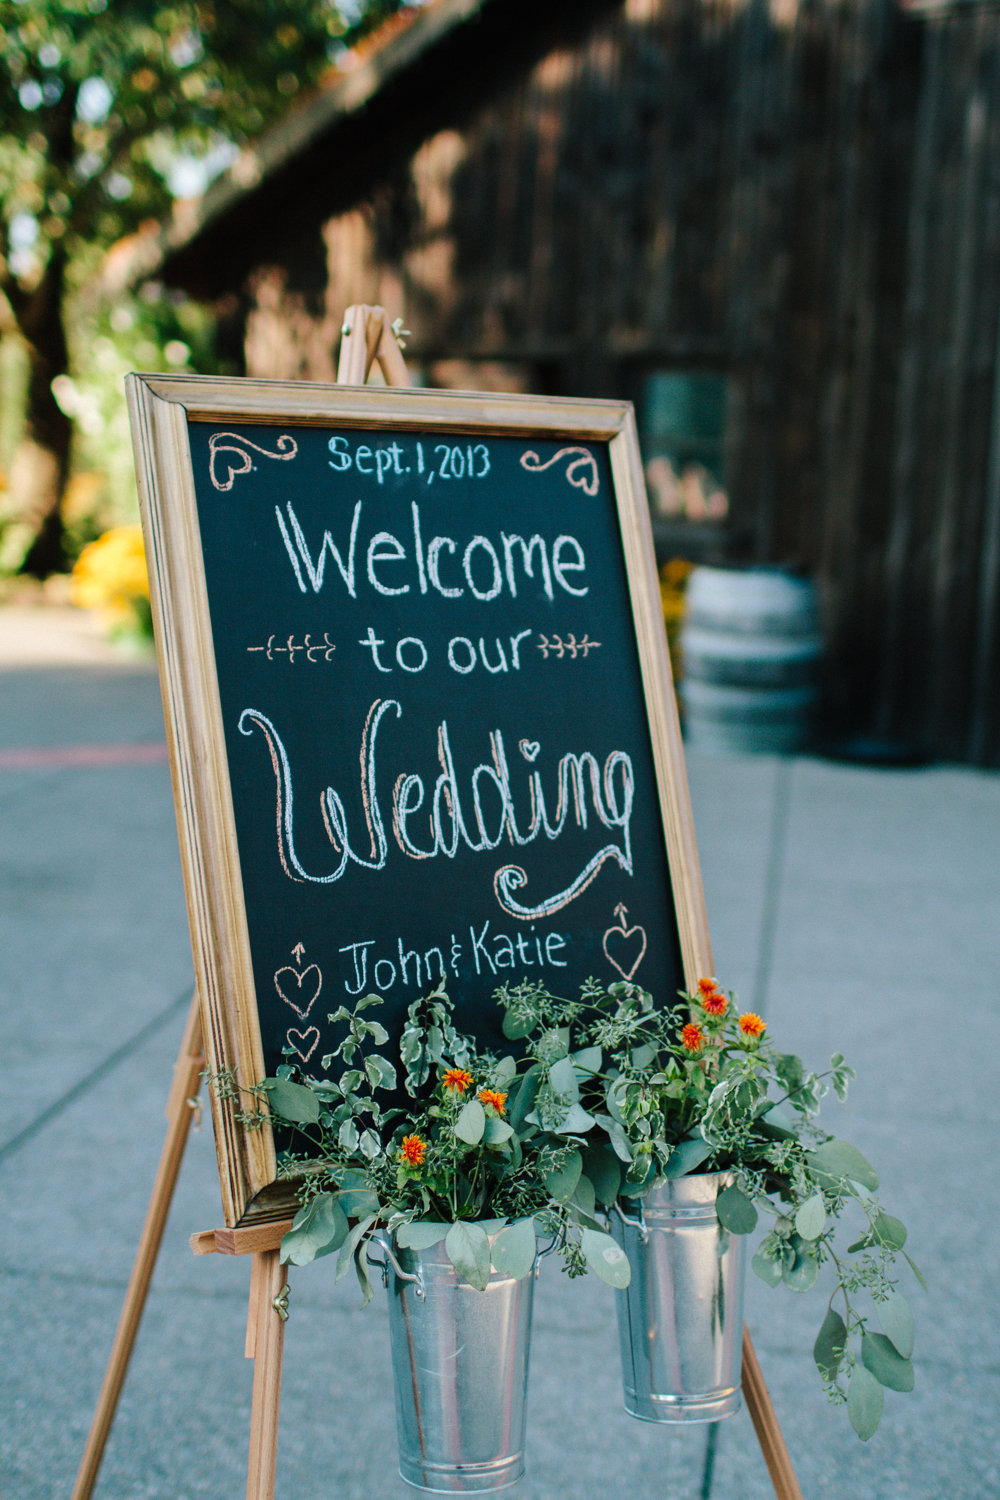 Jess Hunter Photography, Jessica Hunter, Seattle wedding photographer, washington state wedding photographer, rustic wedding, farm wedding, north florida wedding photographer, elopement photography, rustic wedding decor, barn wedding decor, chalkboard wedding signage